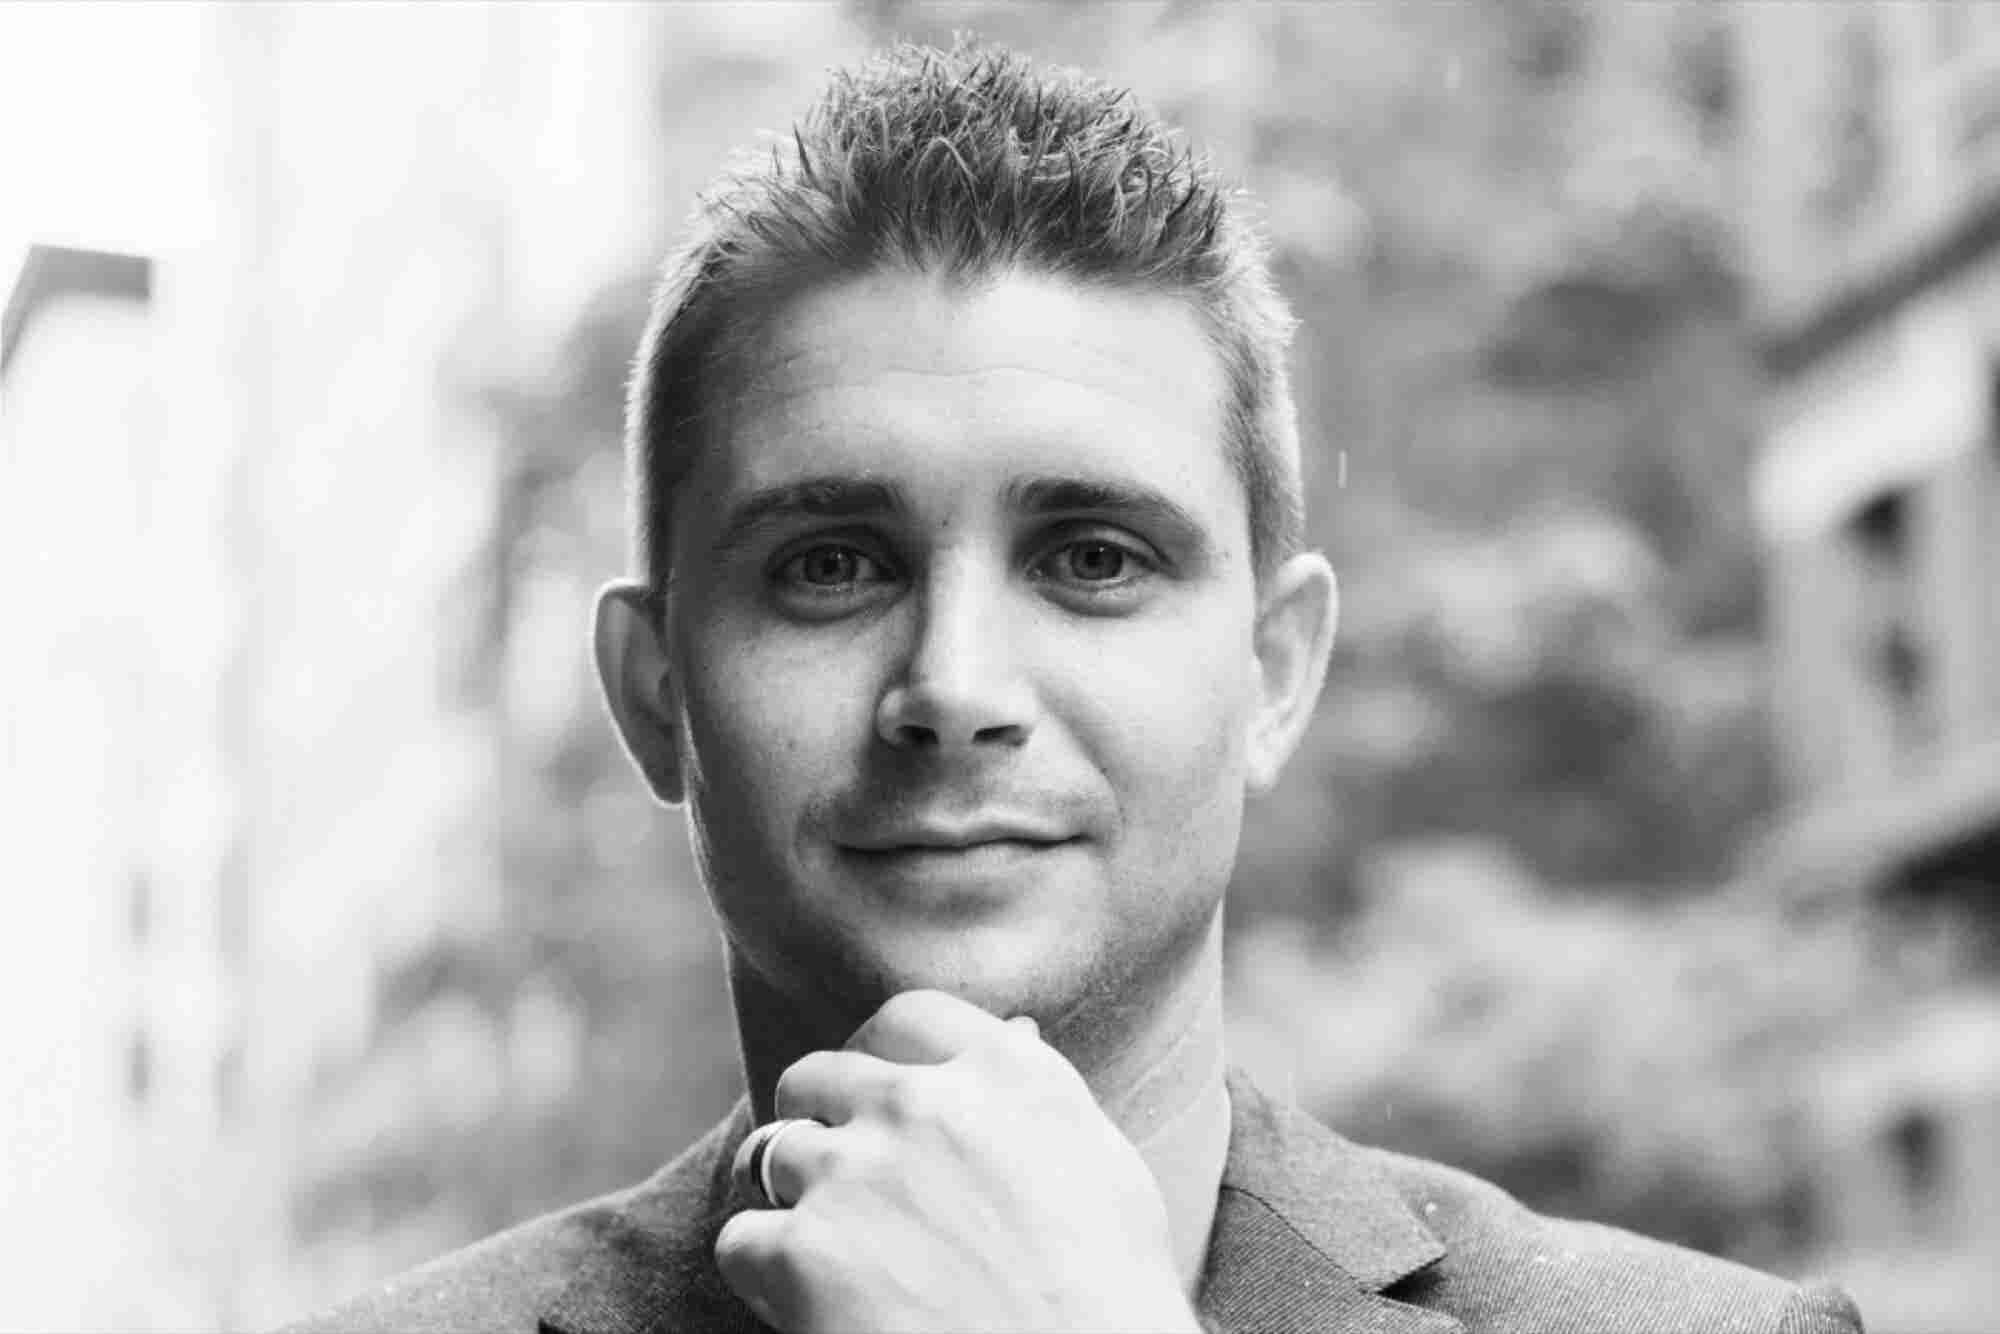 Have a Burning Business Question? Ask Our Marketing Expert Aaron Agius.